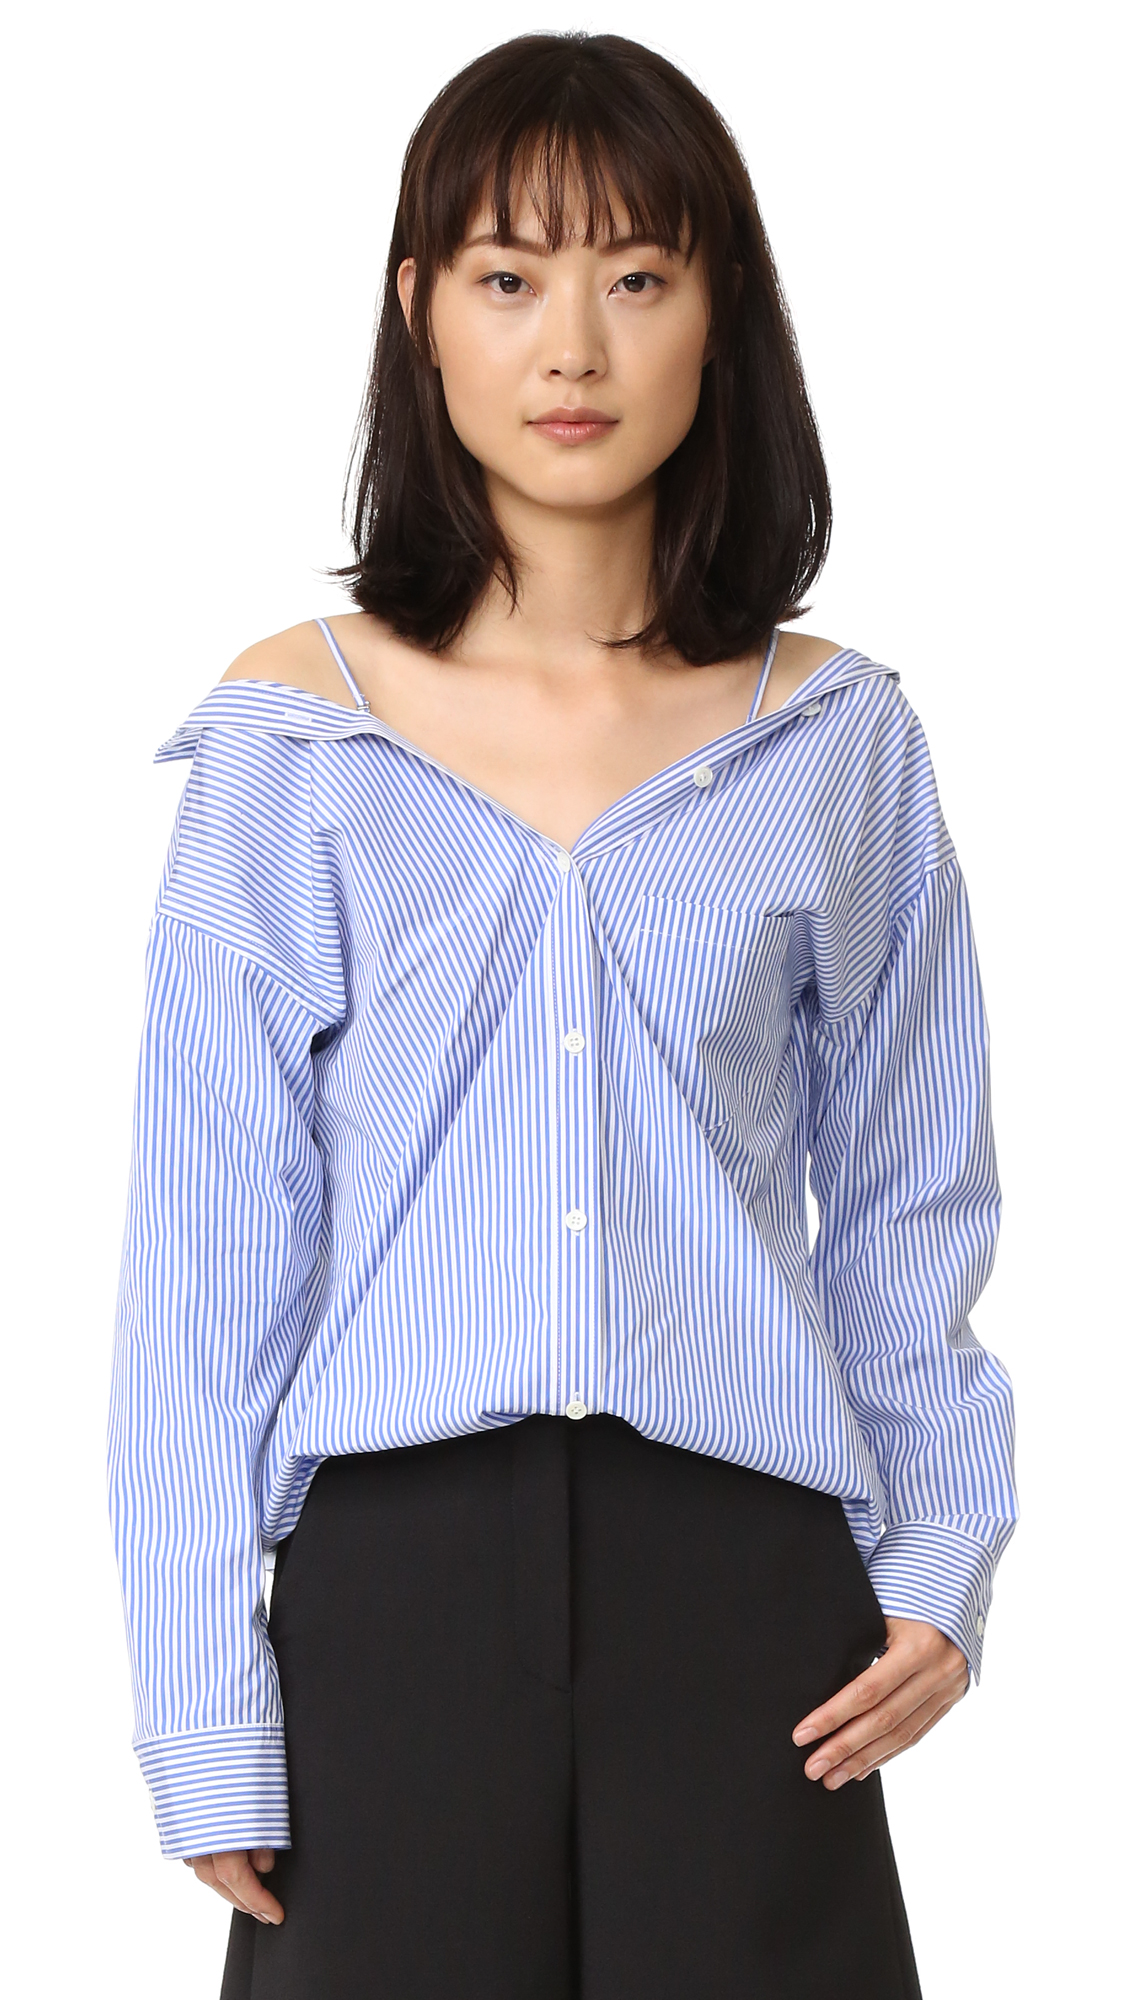 Theory Tamalee Blouse - Blue/White at Shopbop